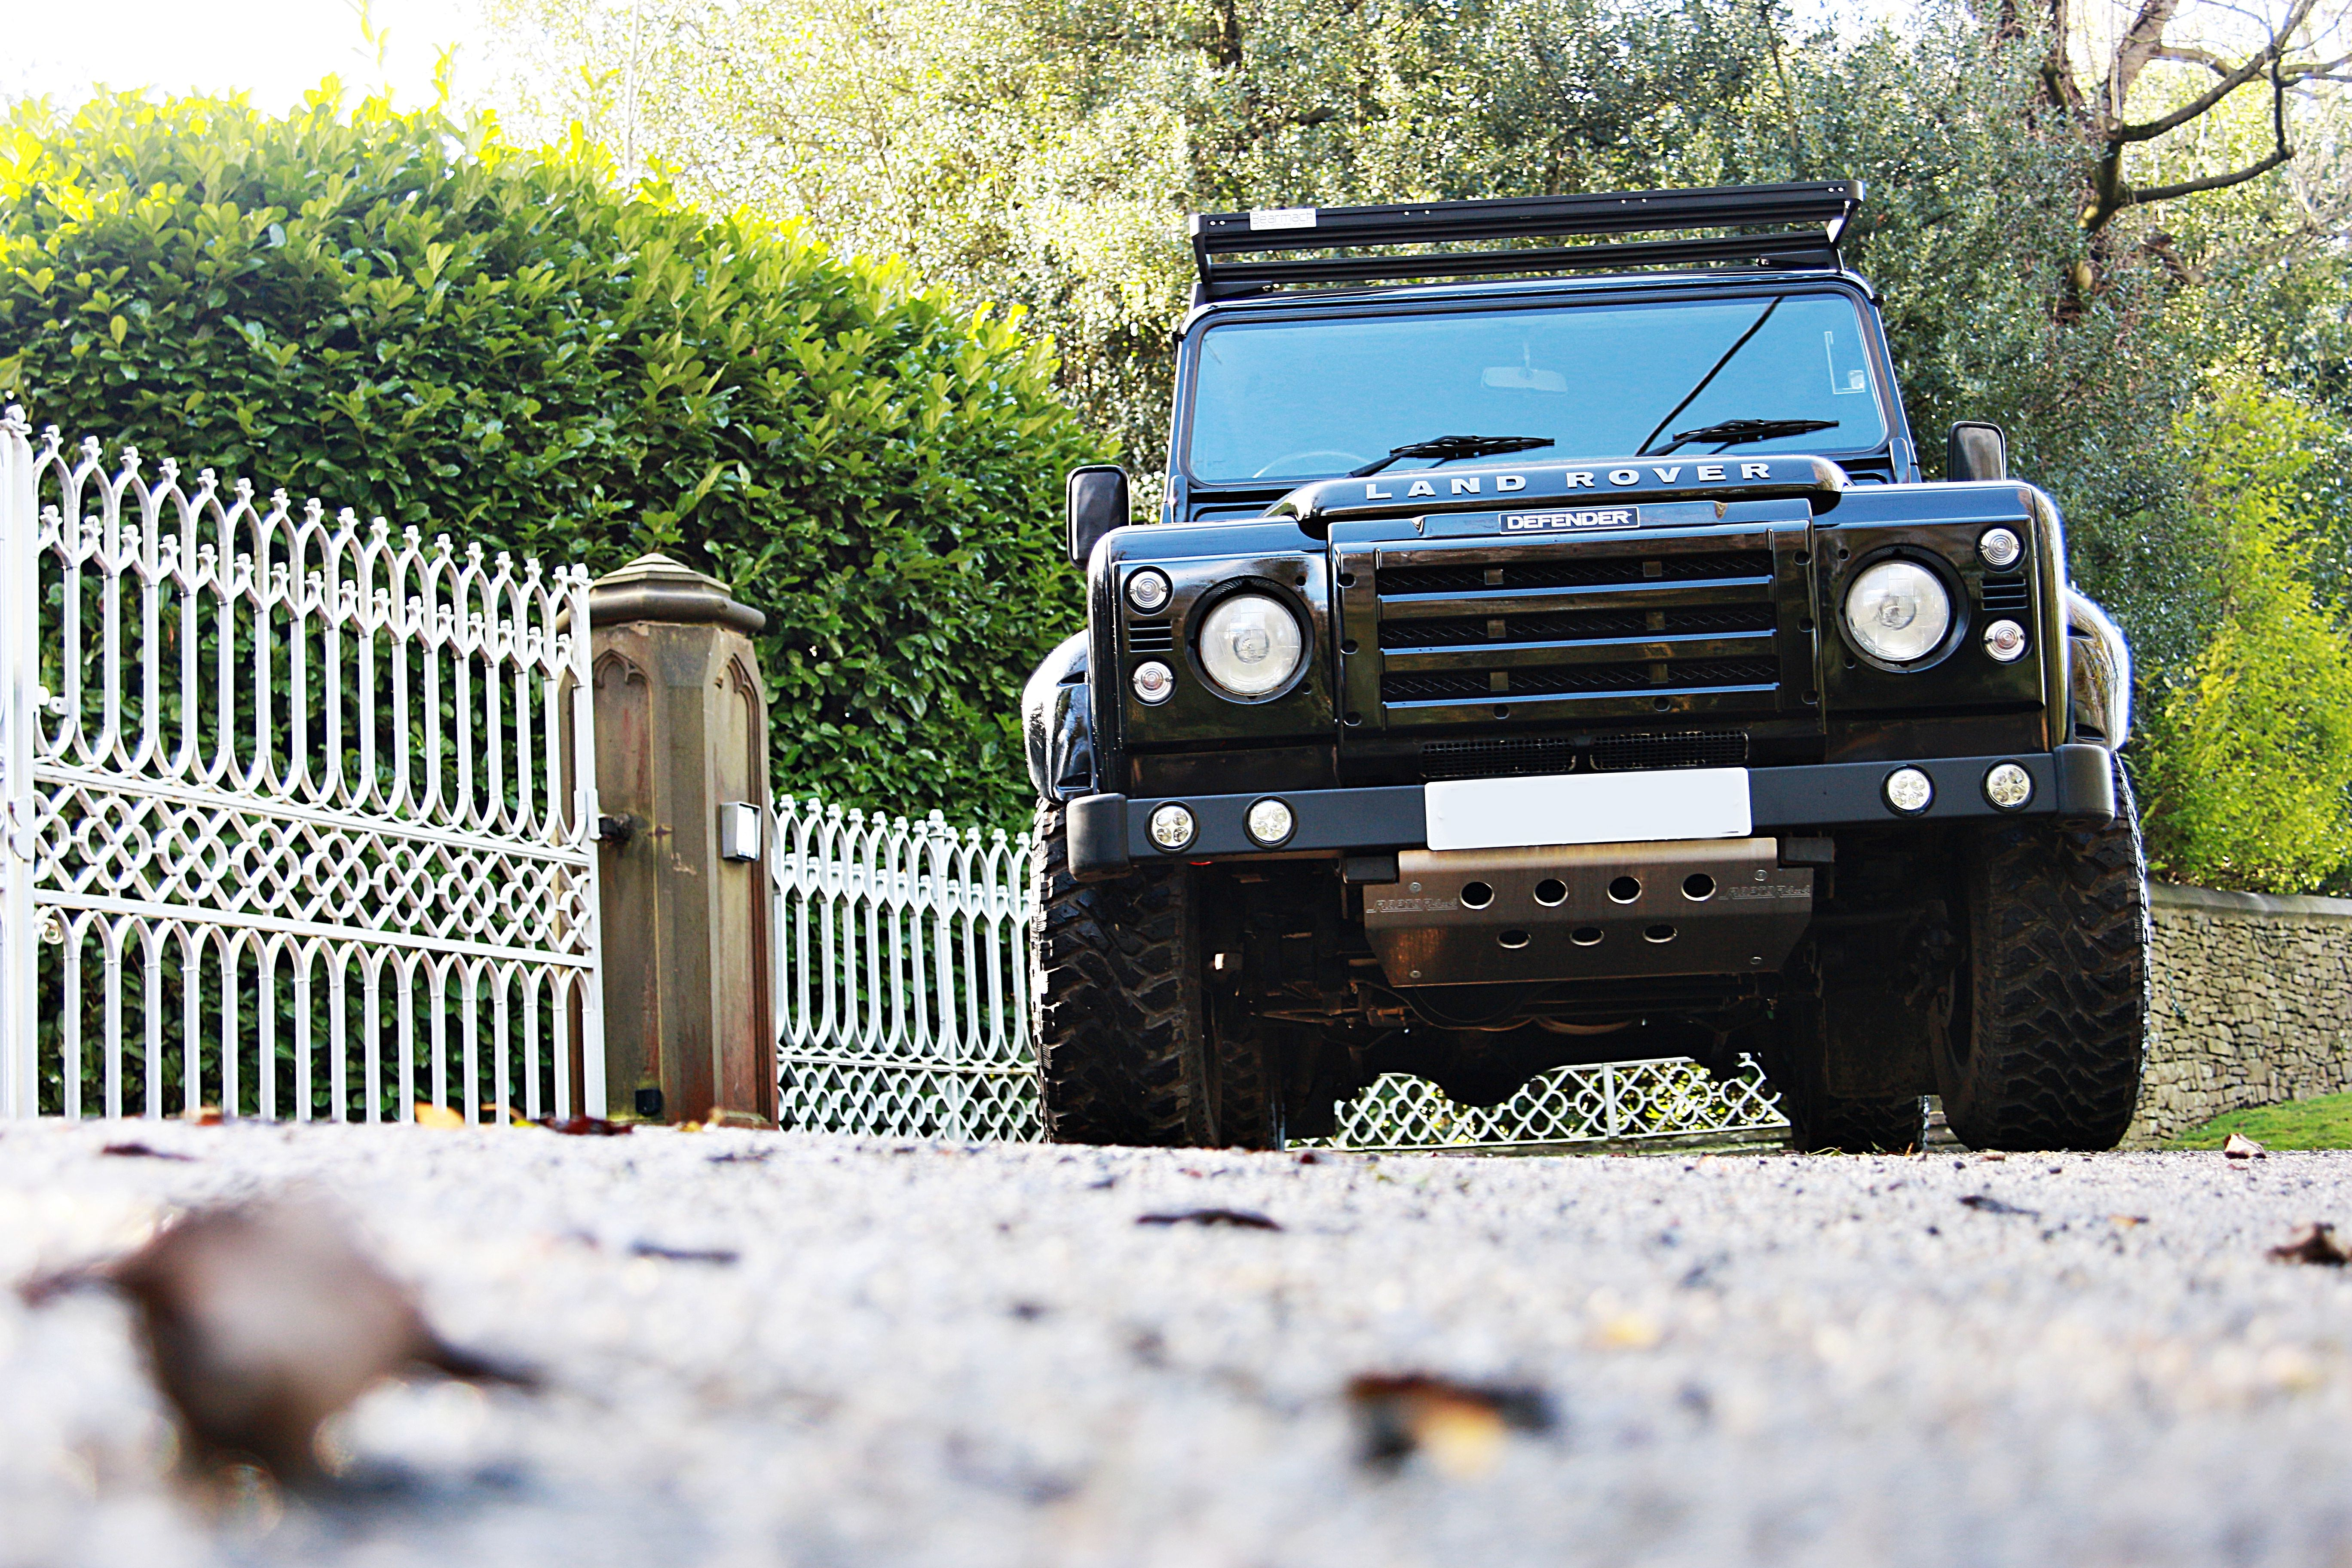 Launching our SEEKER Sceptre - a conversion for the pre-owned Land Rover Defender!